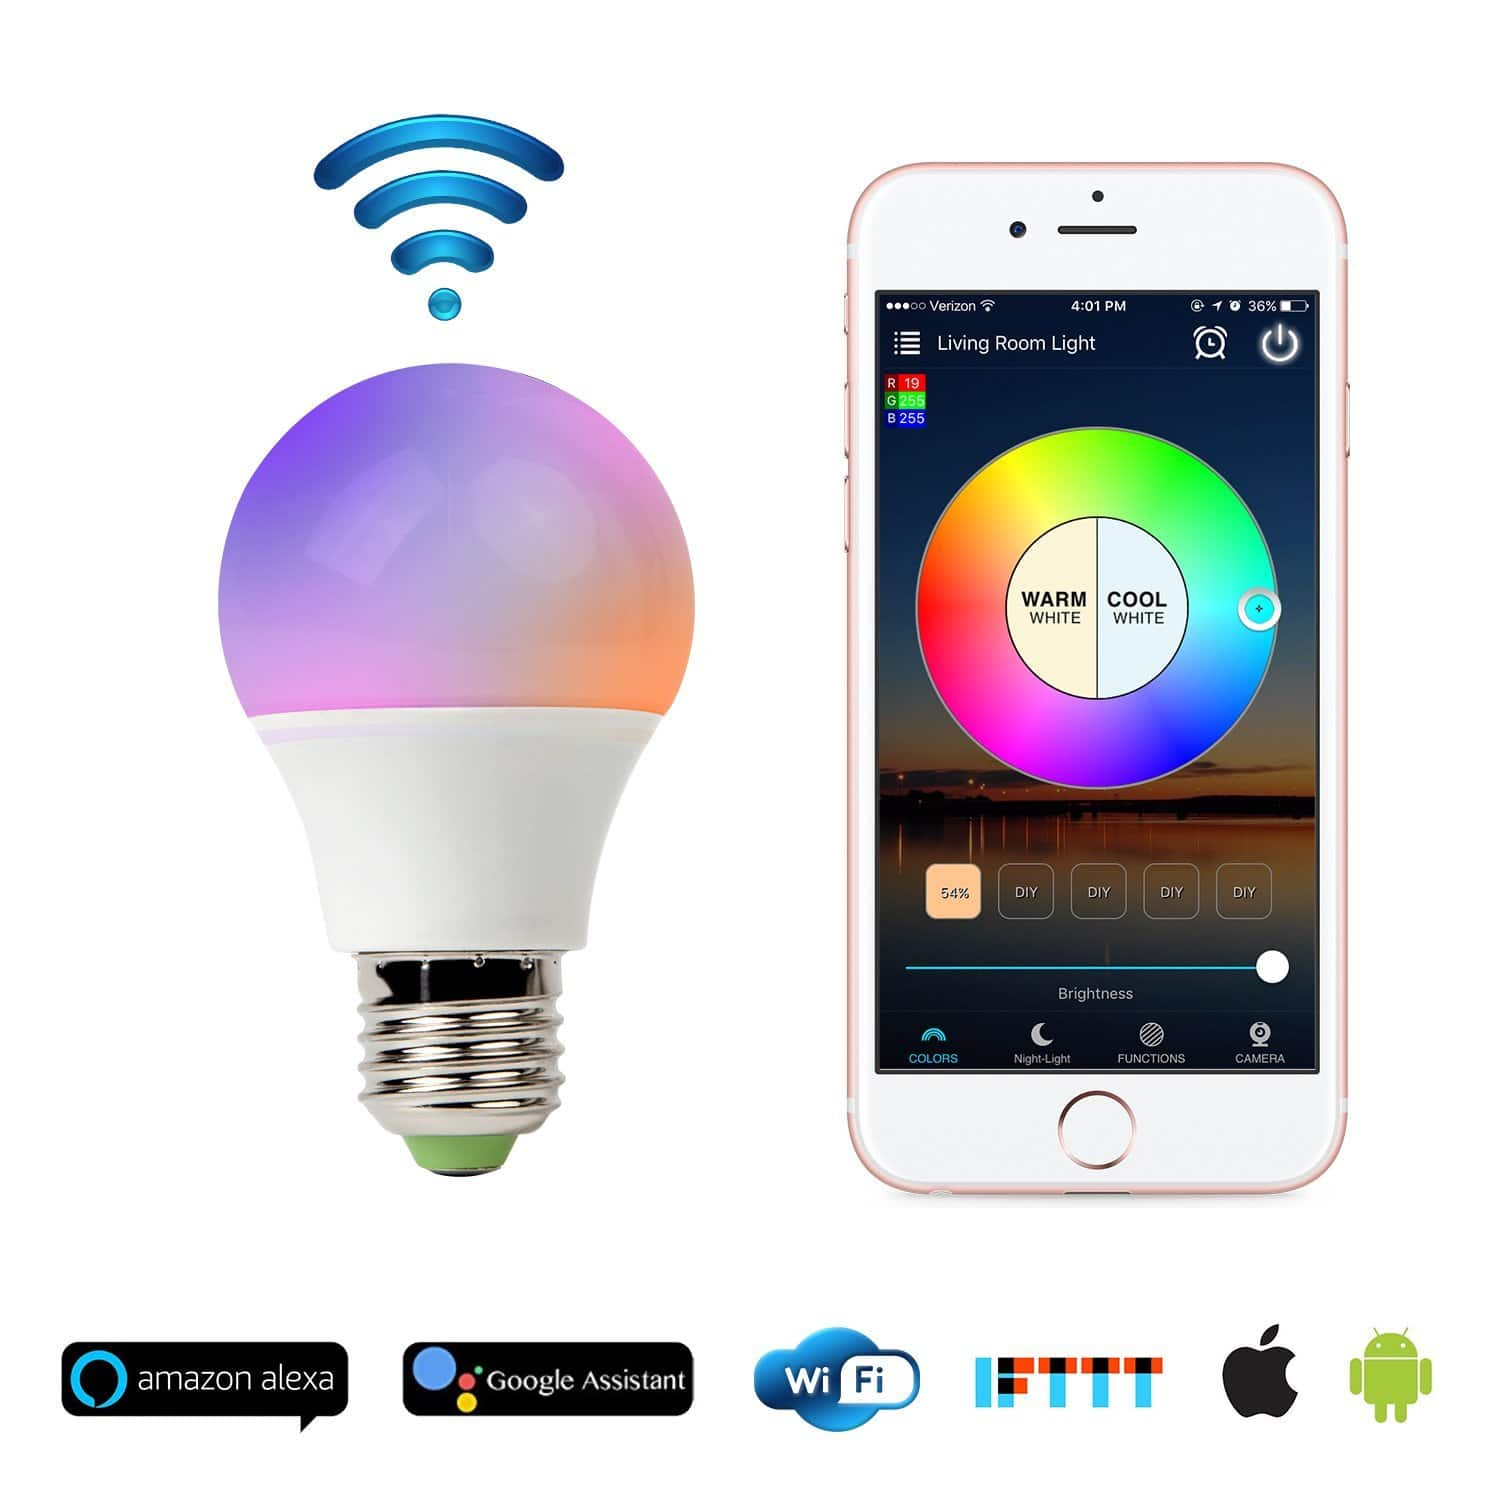 Smart WiFi Light Bulb, No Hub Required, Works with Alexa $13.99 @Amazon